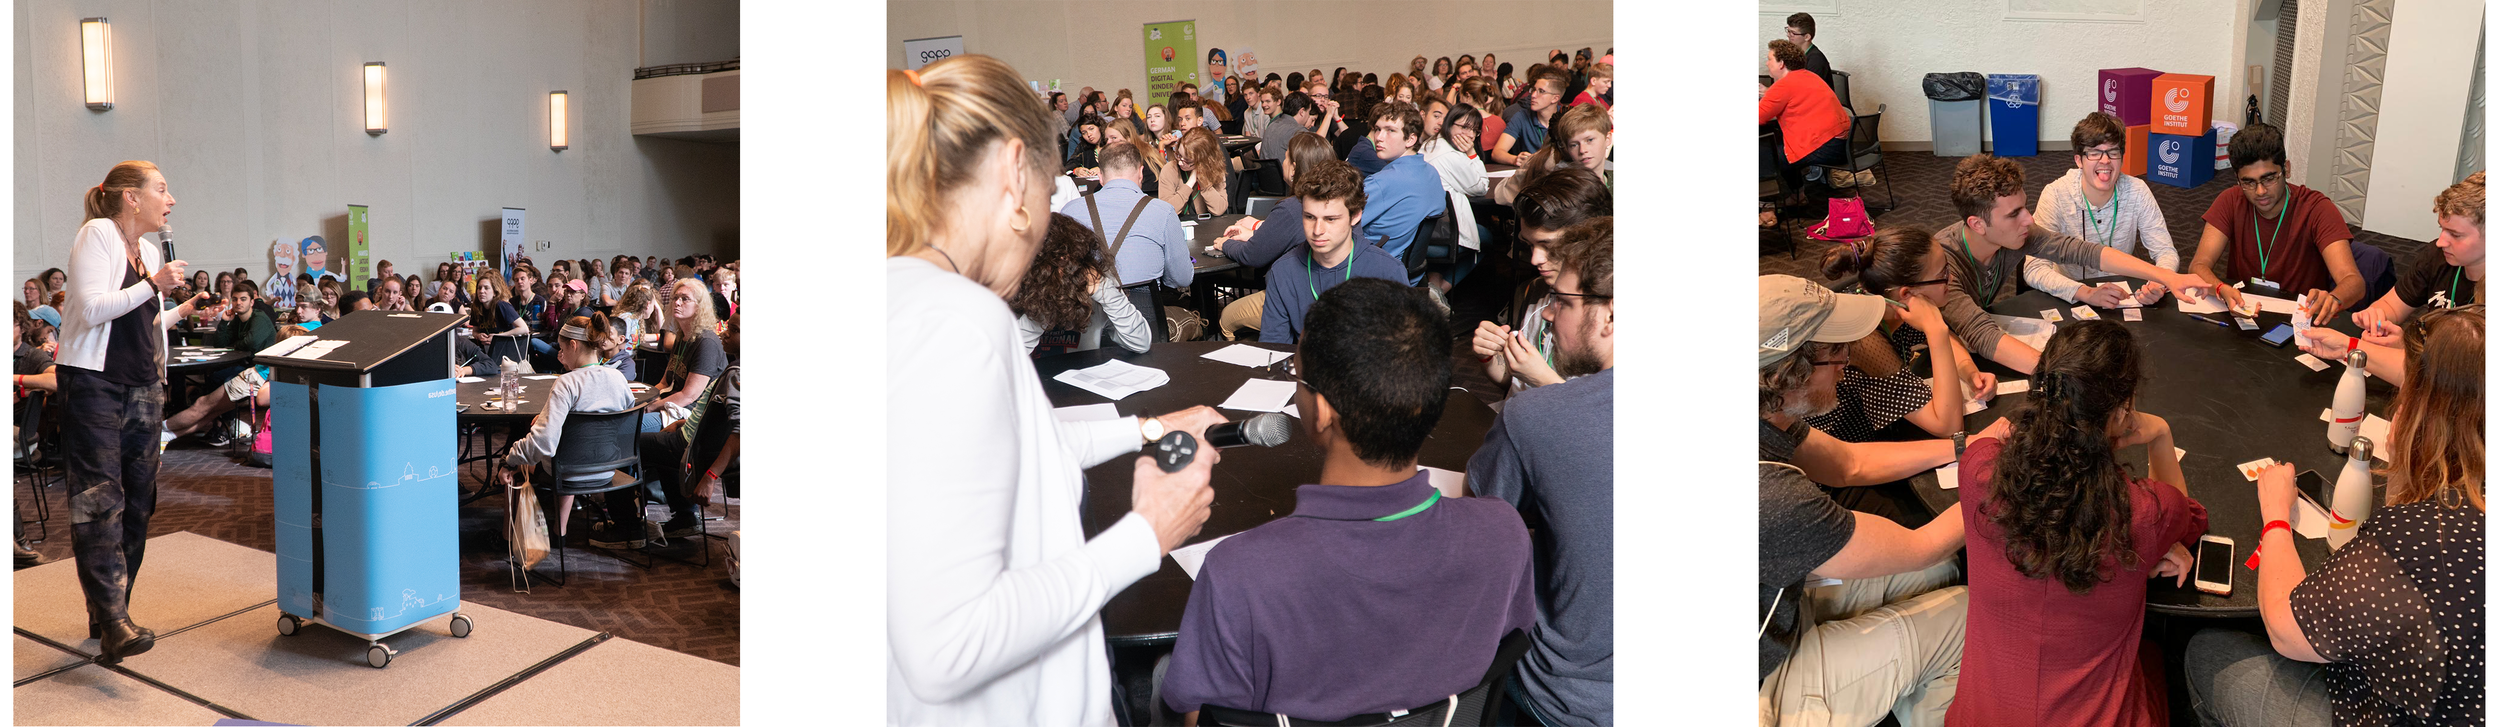 Jaimie P. Cloud and Students at the Sustainability Summit 2019 in Chicago